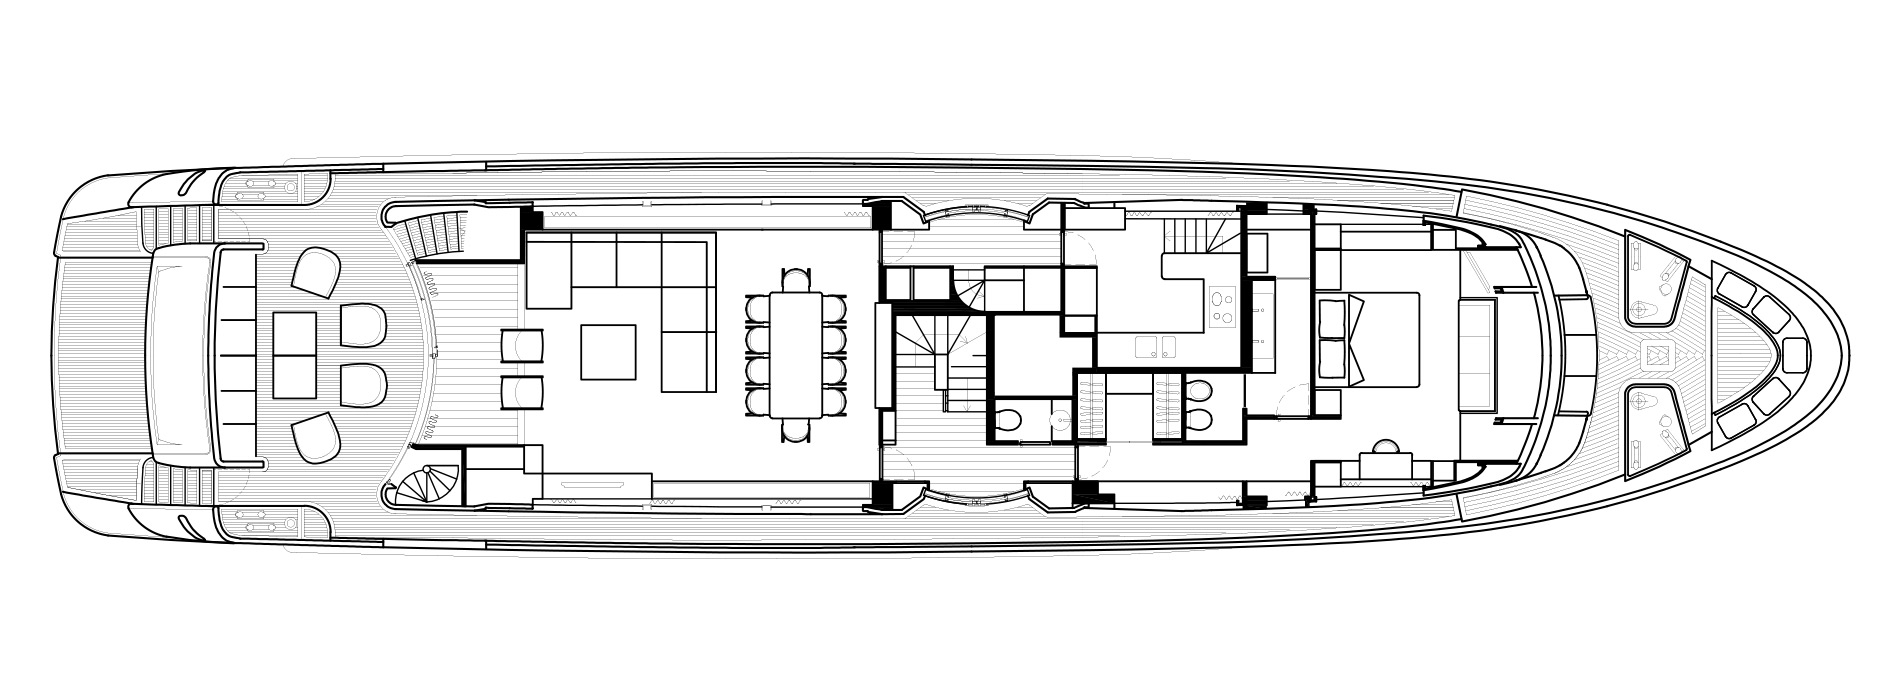 Sanlorenzo Yachts SD112 Main deck Version A